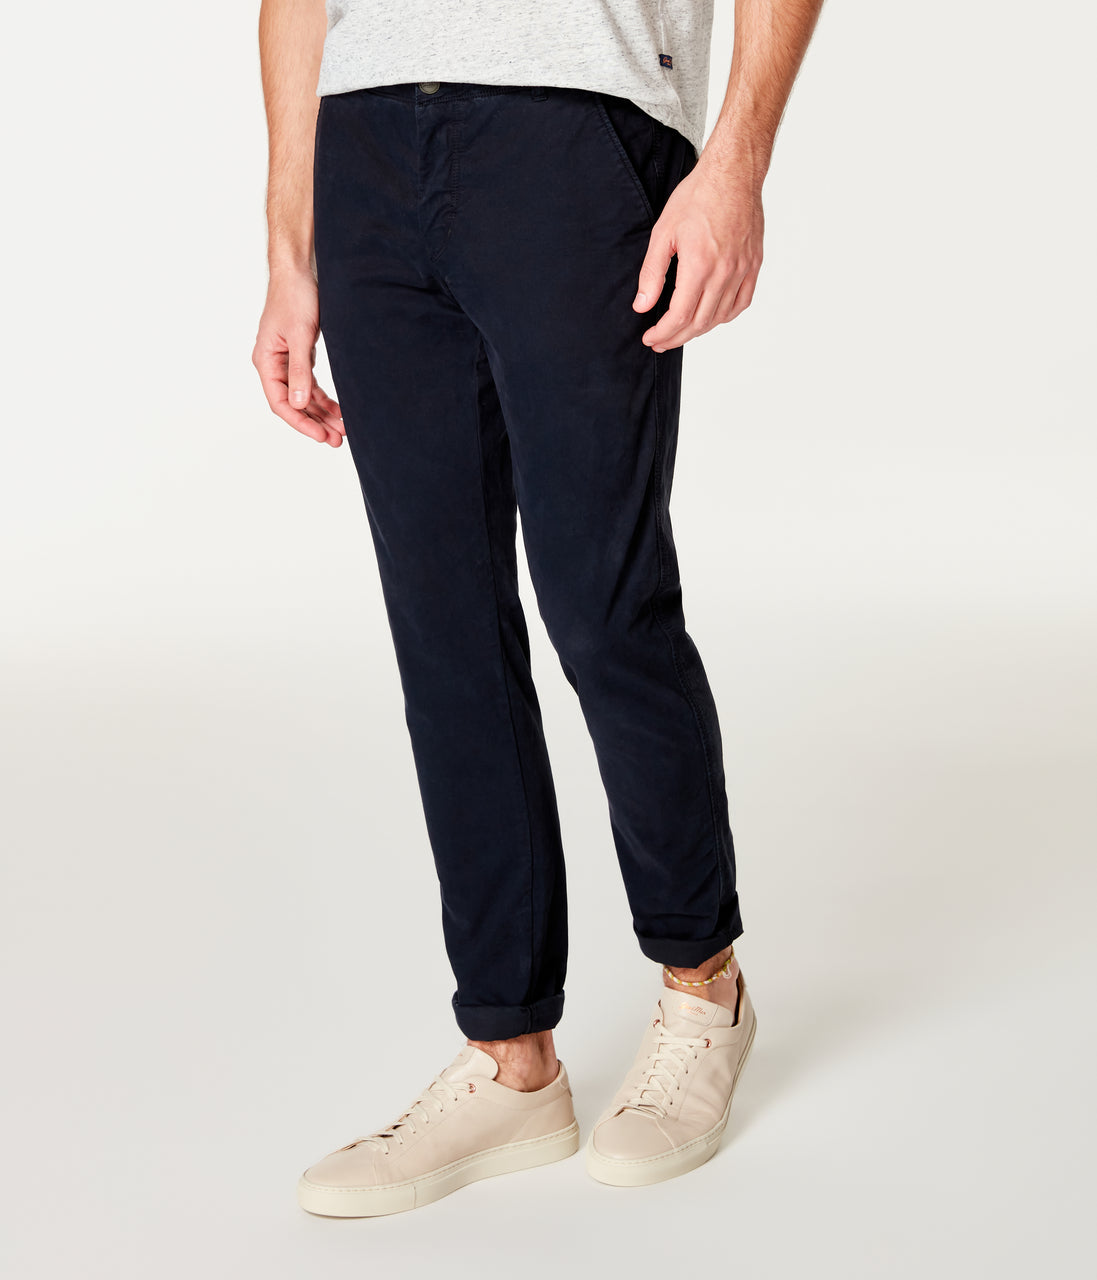 Pro Stretch Twill Star Chino - Black Navy - Good Man Brand - Pro Stretch Twill Star Chino - Black Navy